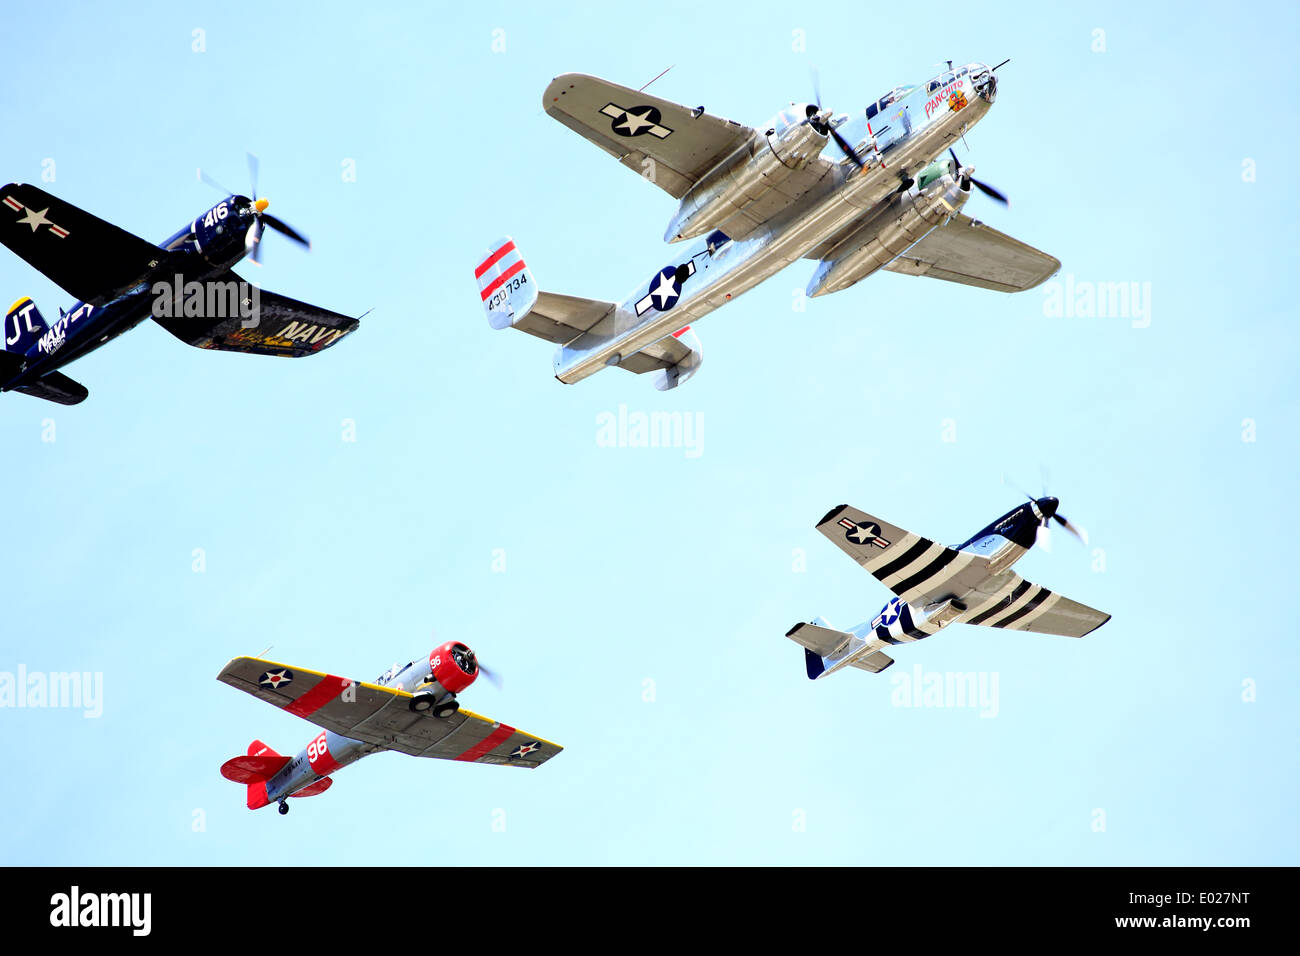 Four world war 2 airplanes in formation; a B-25 bomber, a mustang, a corsair and an SNJ T6 Texan - Stock Image